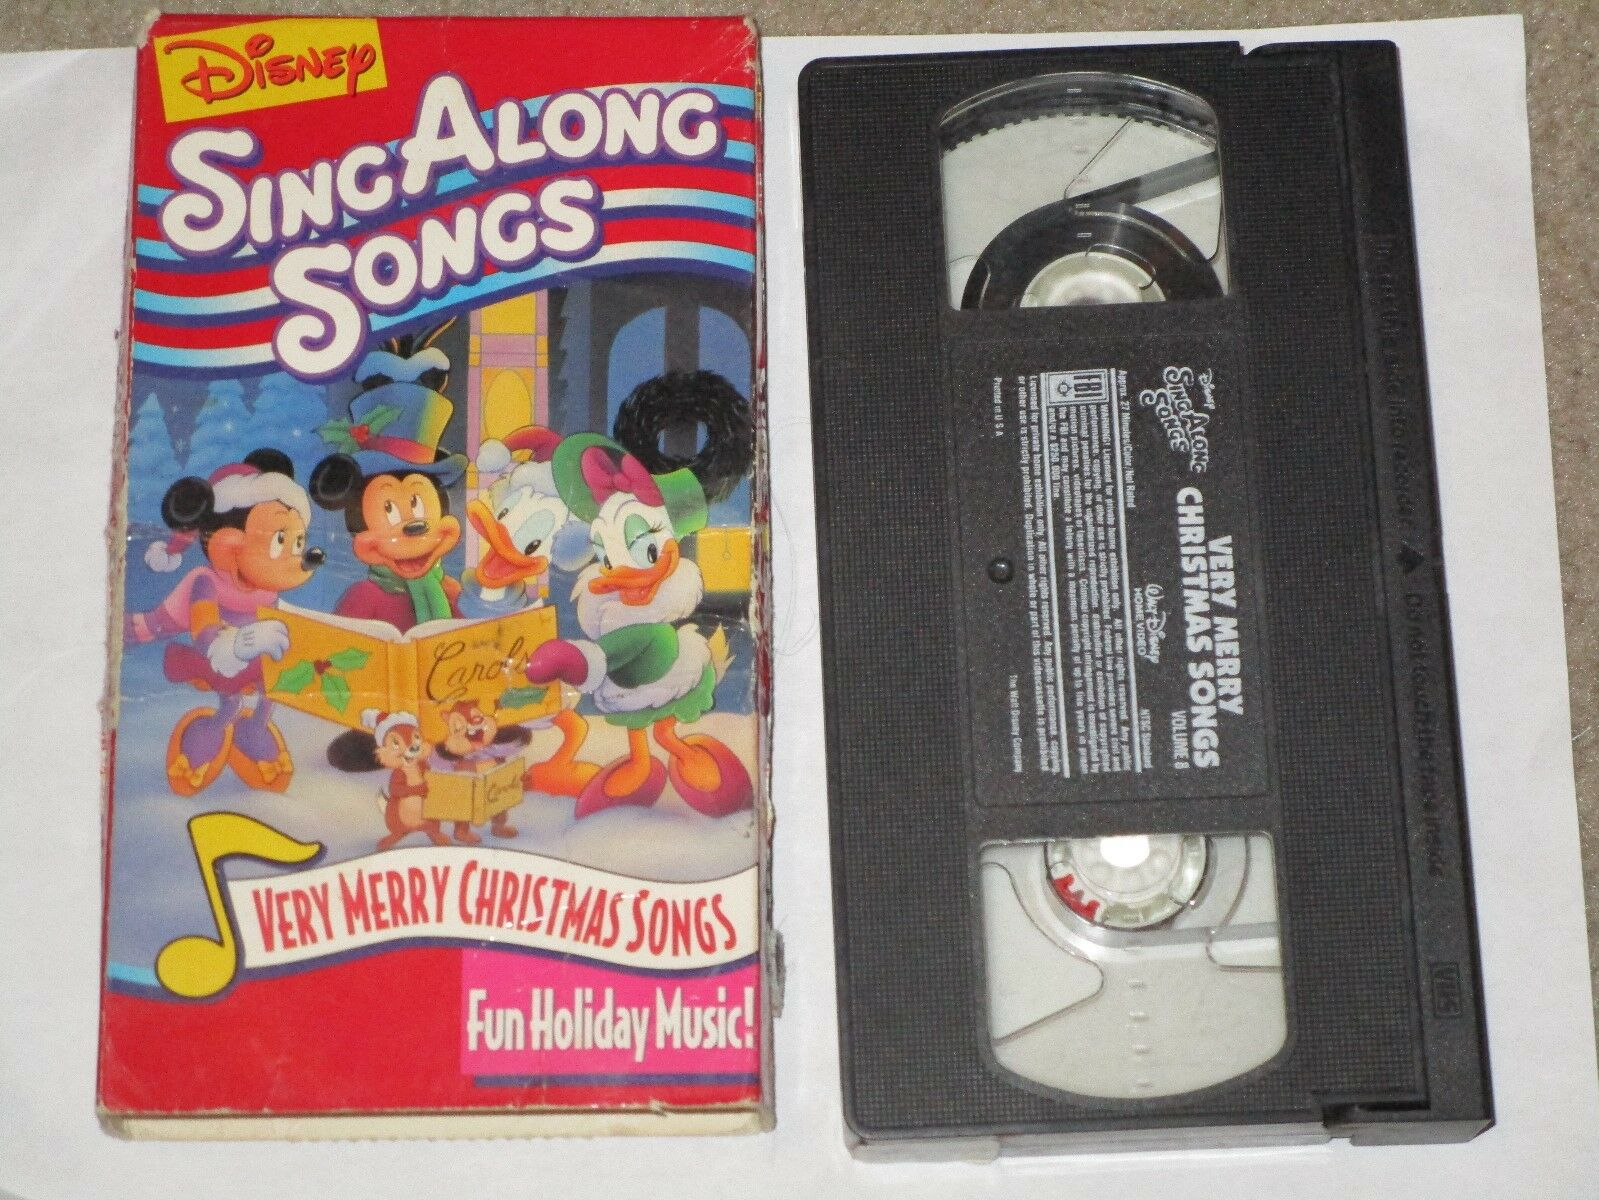 vintage disney sing along songs very merry christmas songs vhs tape rare oop 1 of 1only 1 available - Disney Sing Along Songs Very Merry Christmas Songs